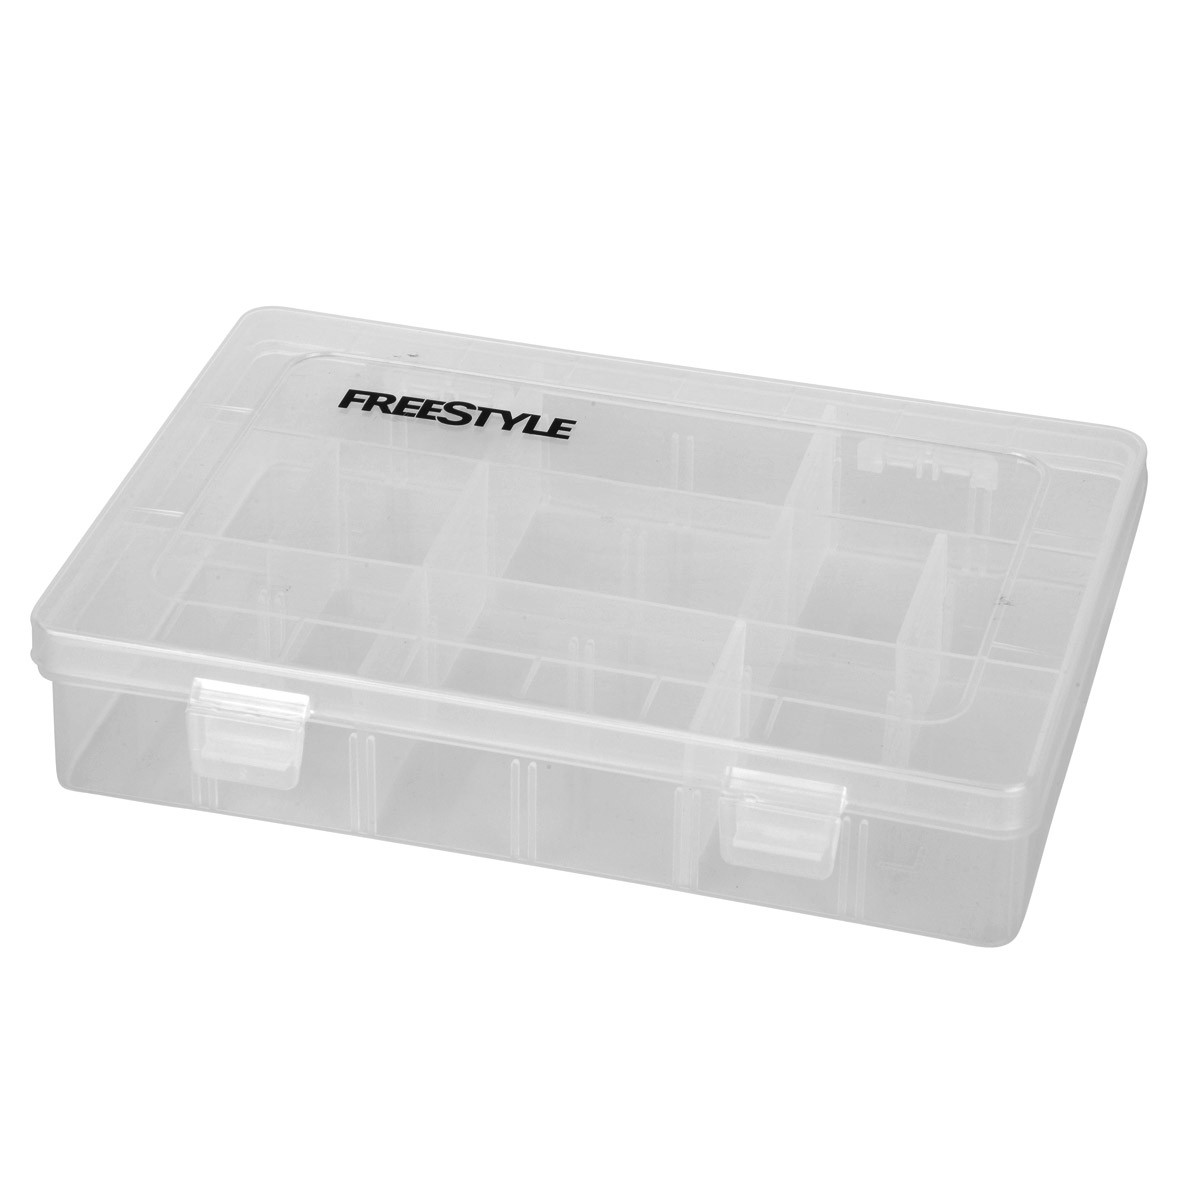 Spro Freestyle Tackle Box